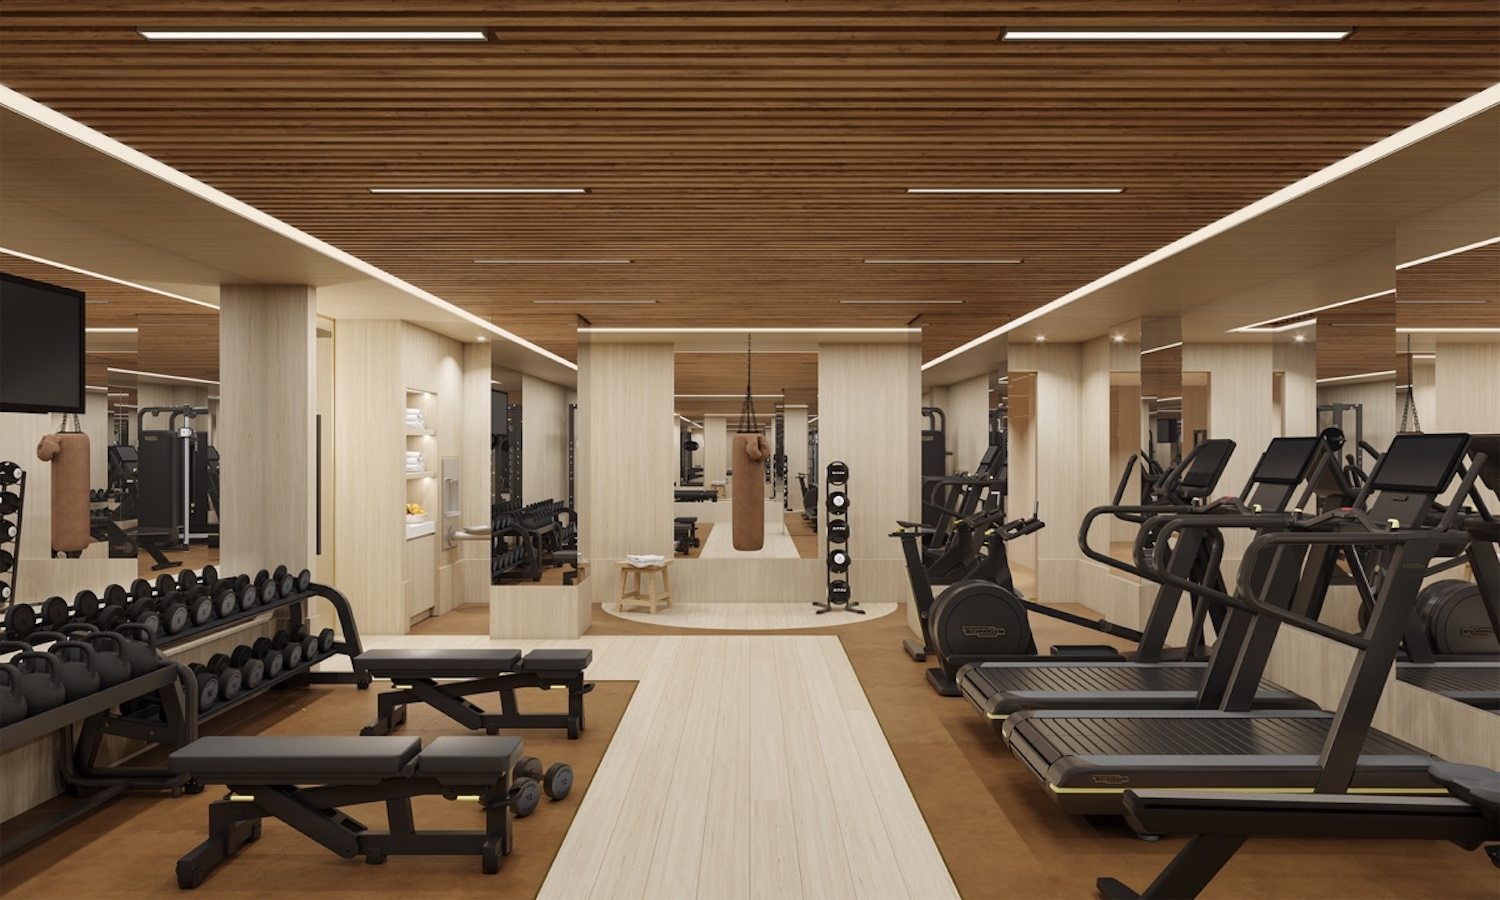 1228 Madison Avenue Fitness Center, designed by Kelly Behun Studio